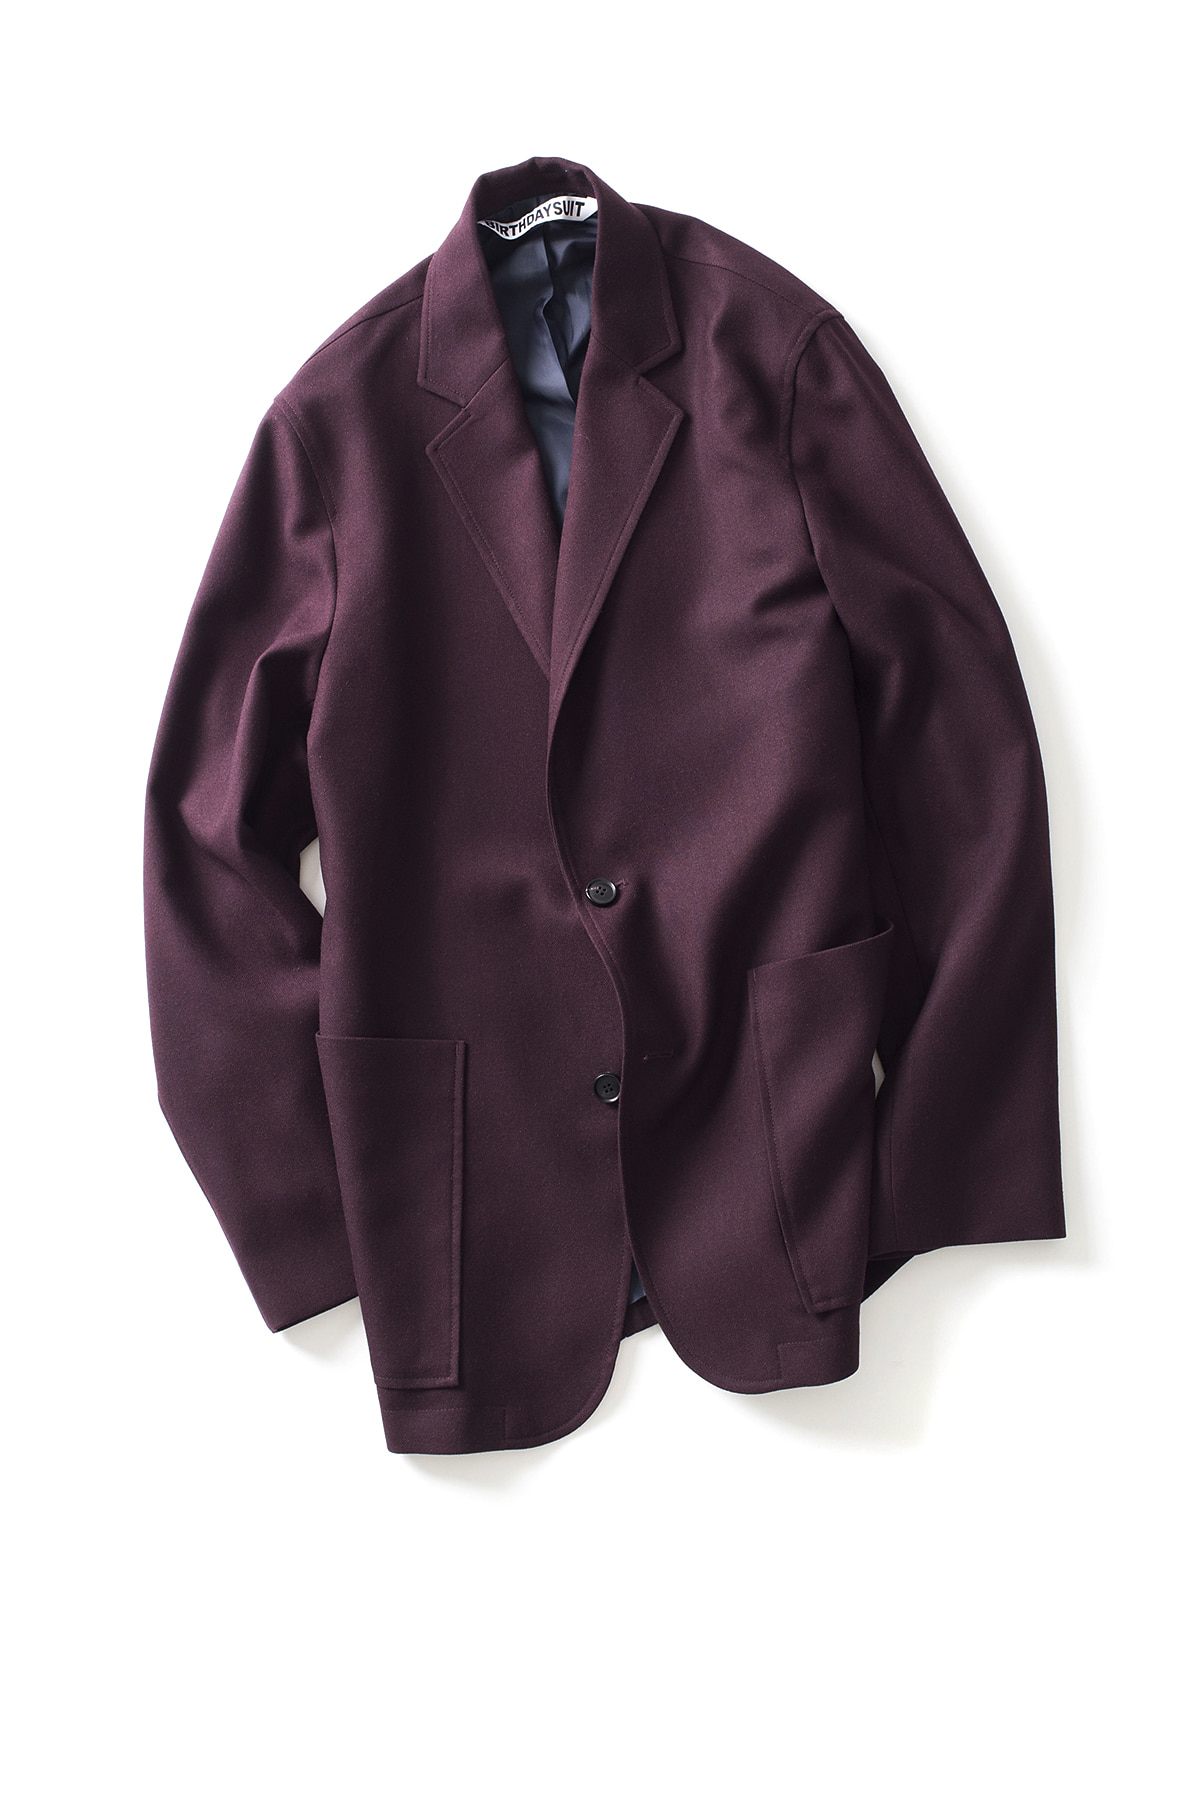 BIRTHDAYSUIT : Daily Suit Jacket (Burgundy)